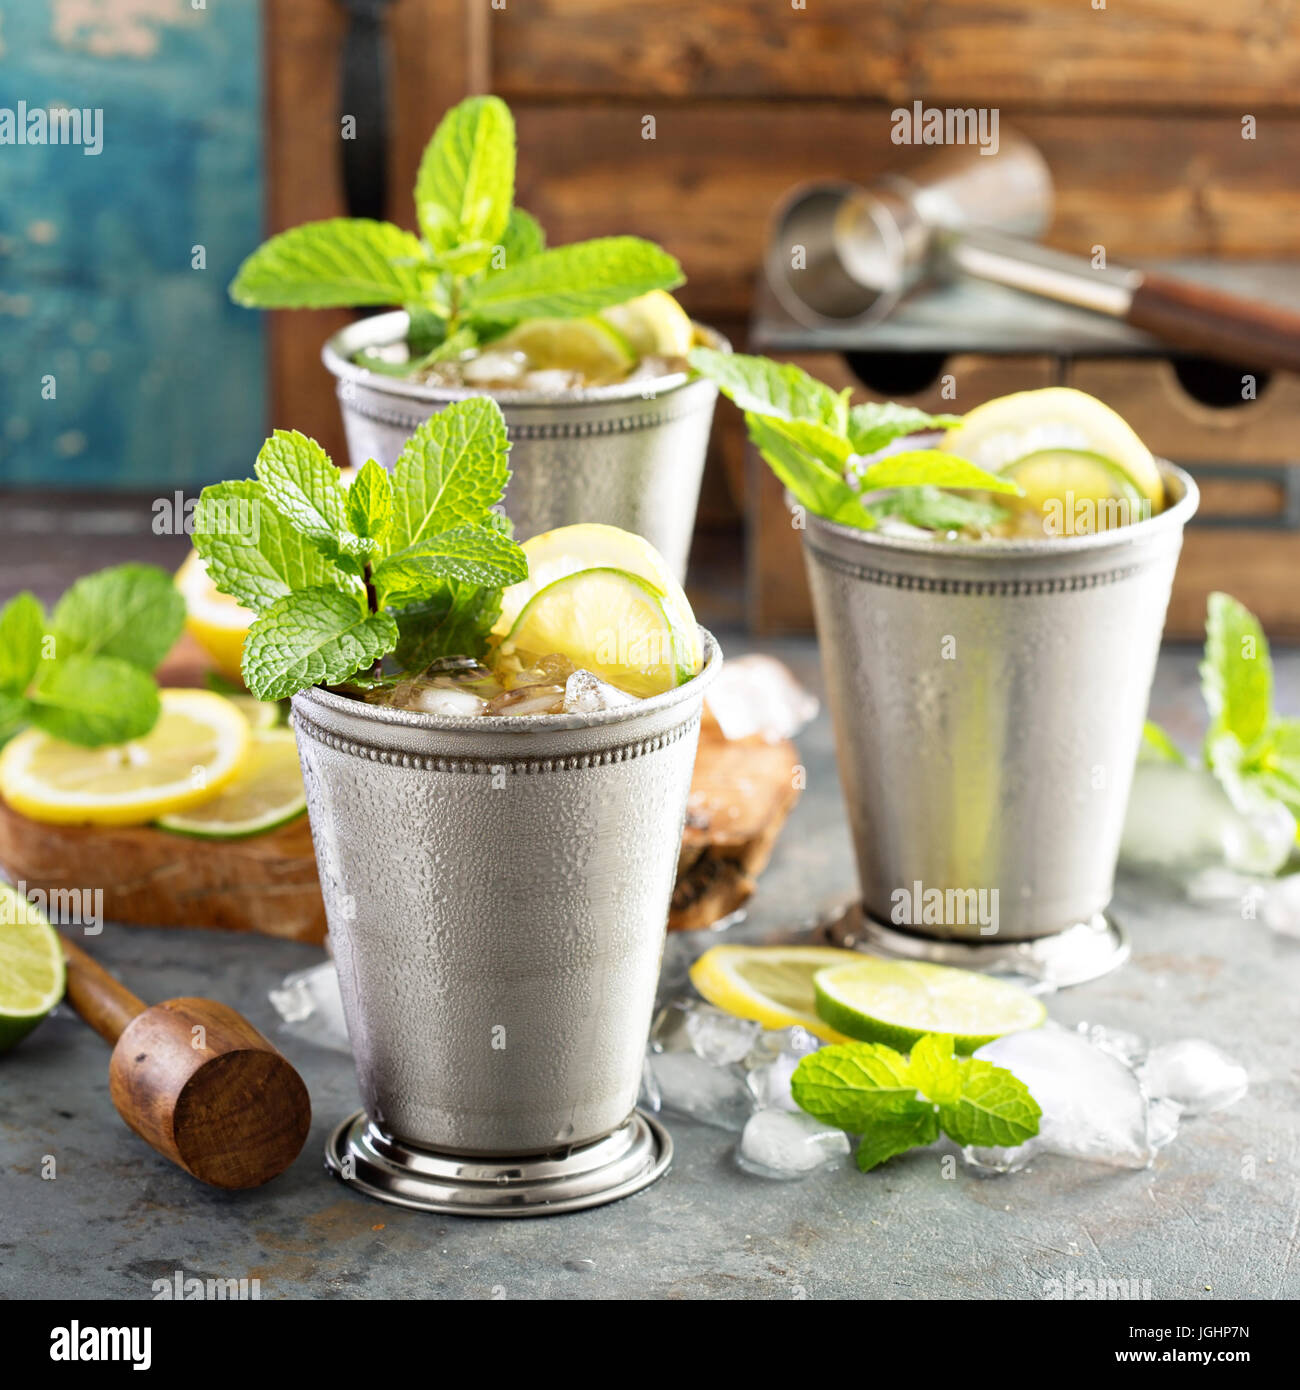 Classic mint julep cocktail - Stock Image